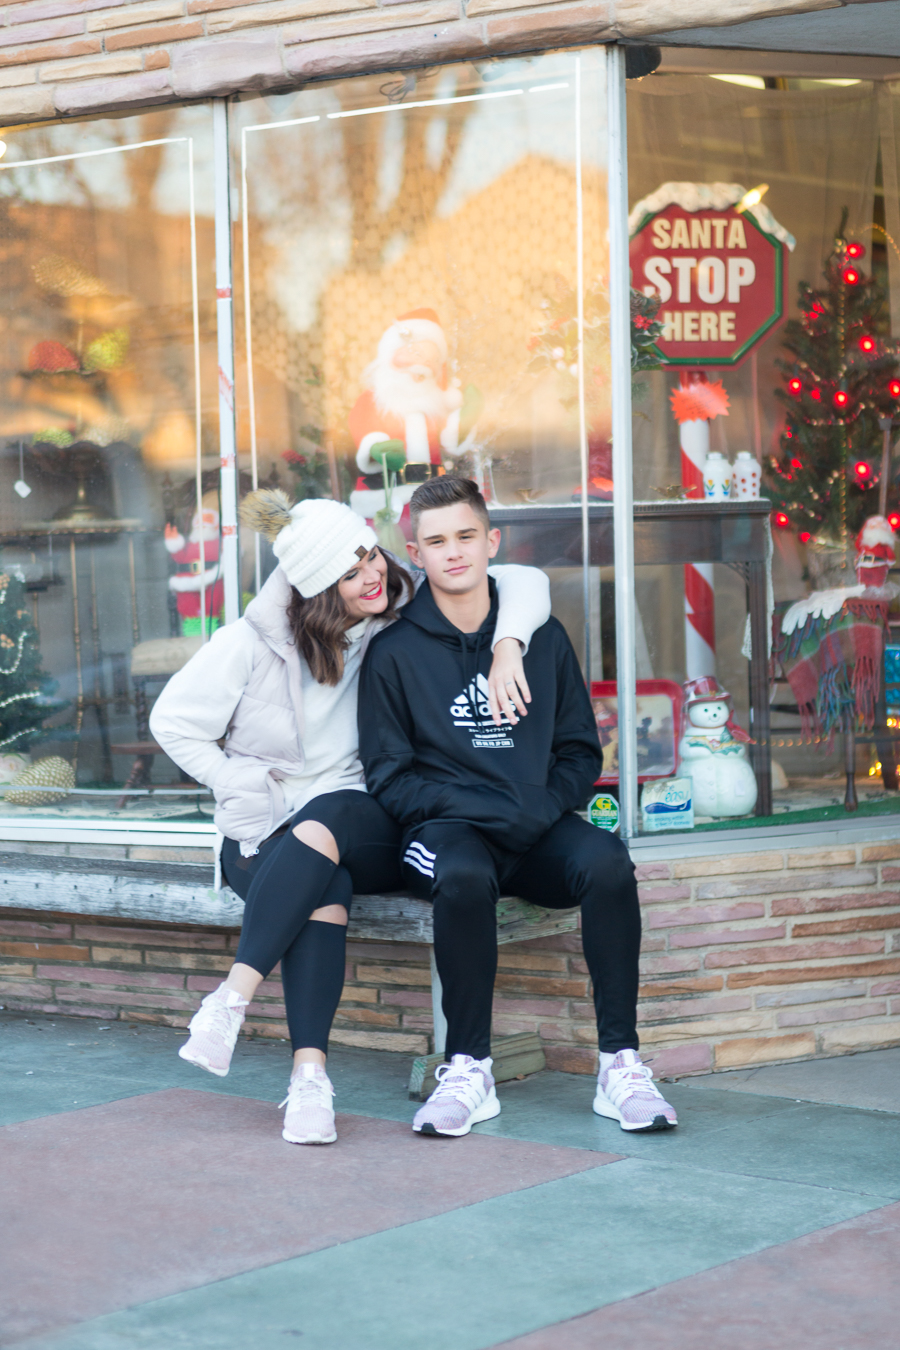 Adidas Holiday Gift Ideas from Finish Line best adidas ultraboosts for teens and women and men